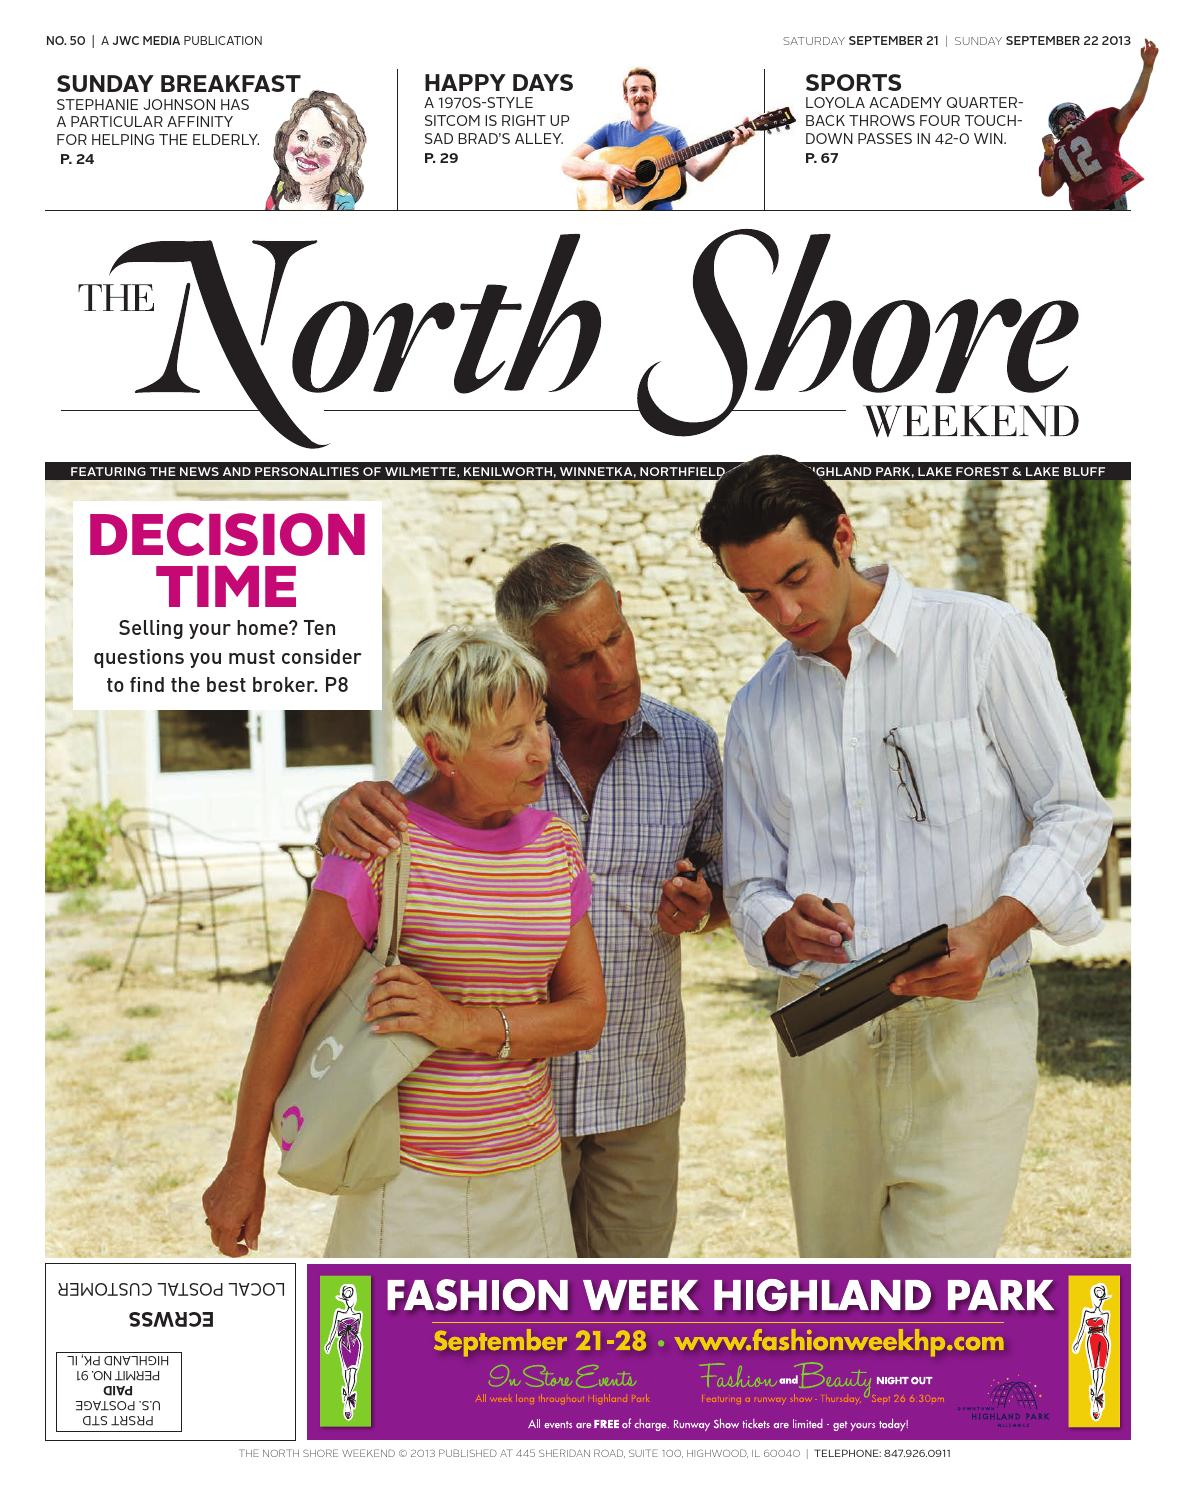 the north shore weekend east issue 50 by jwc media issuu